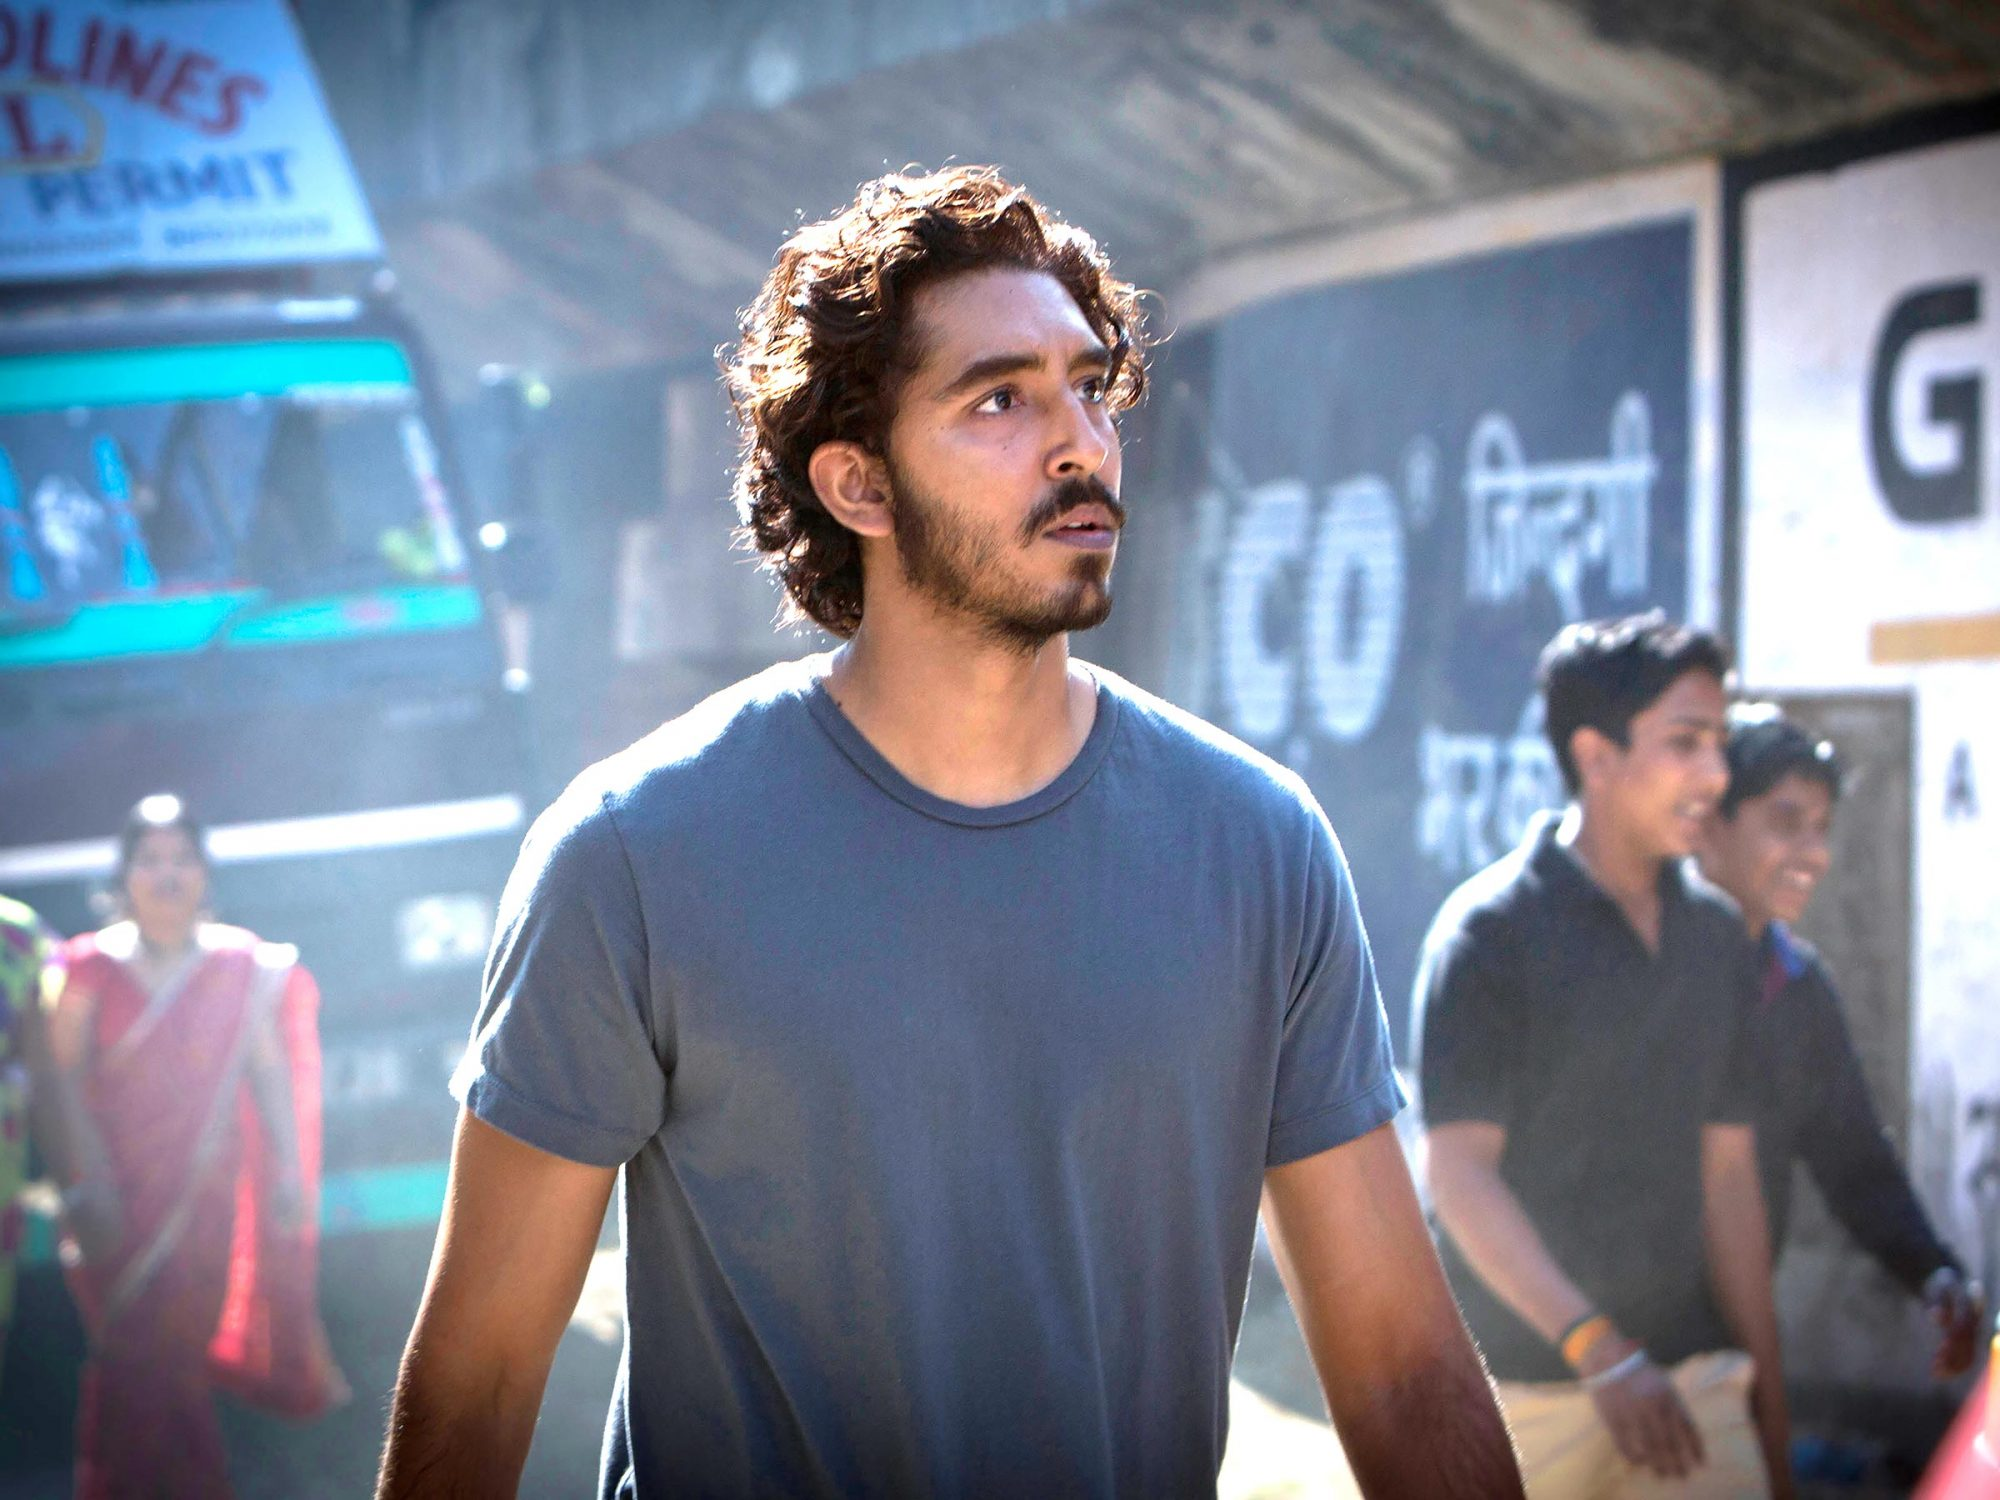 Lion based on A Long Way Home: A Memoir by Saroo Brierley